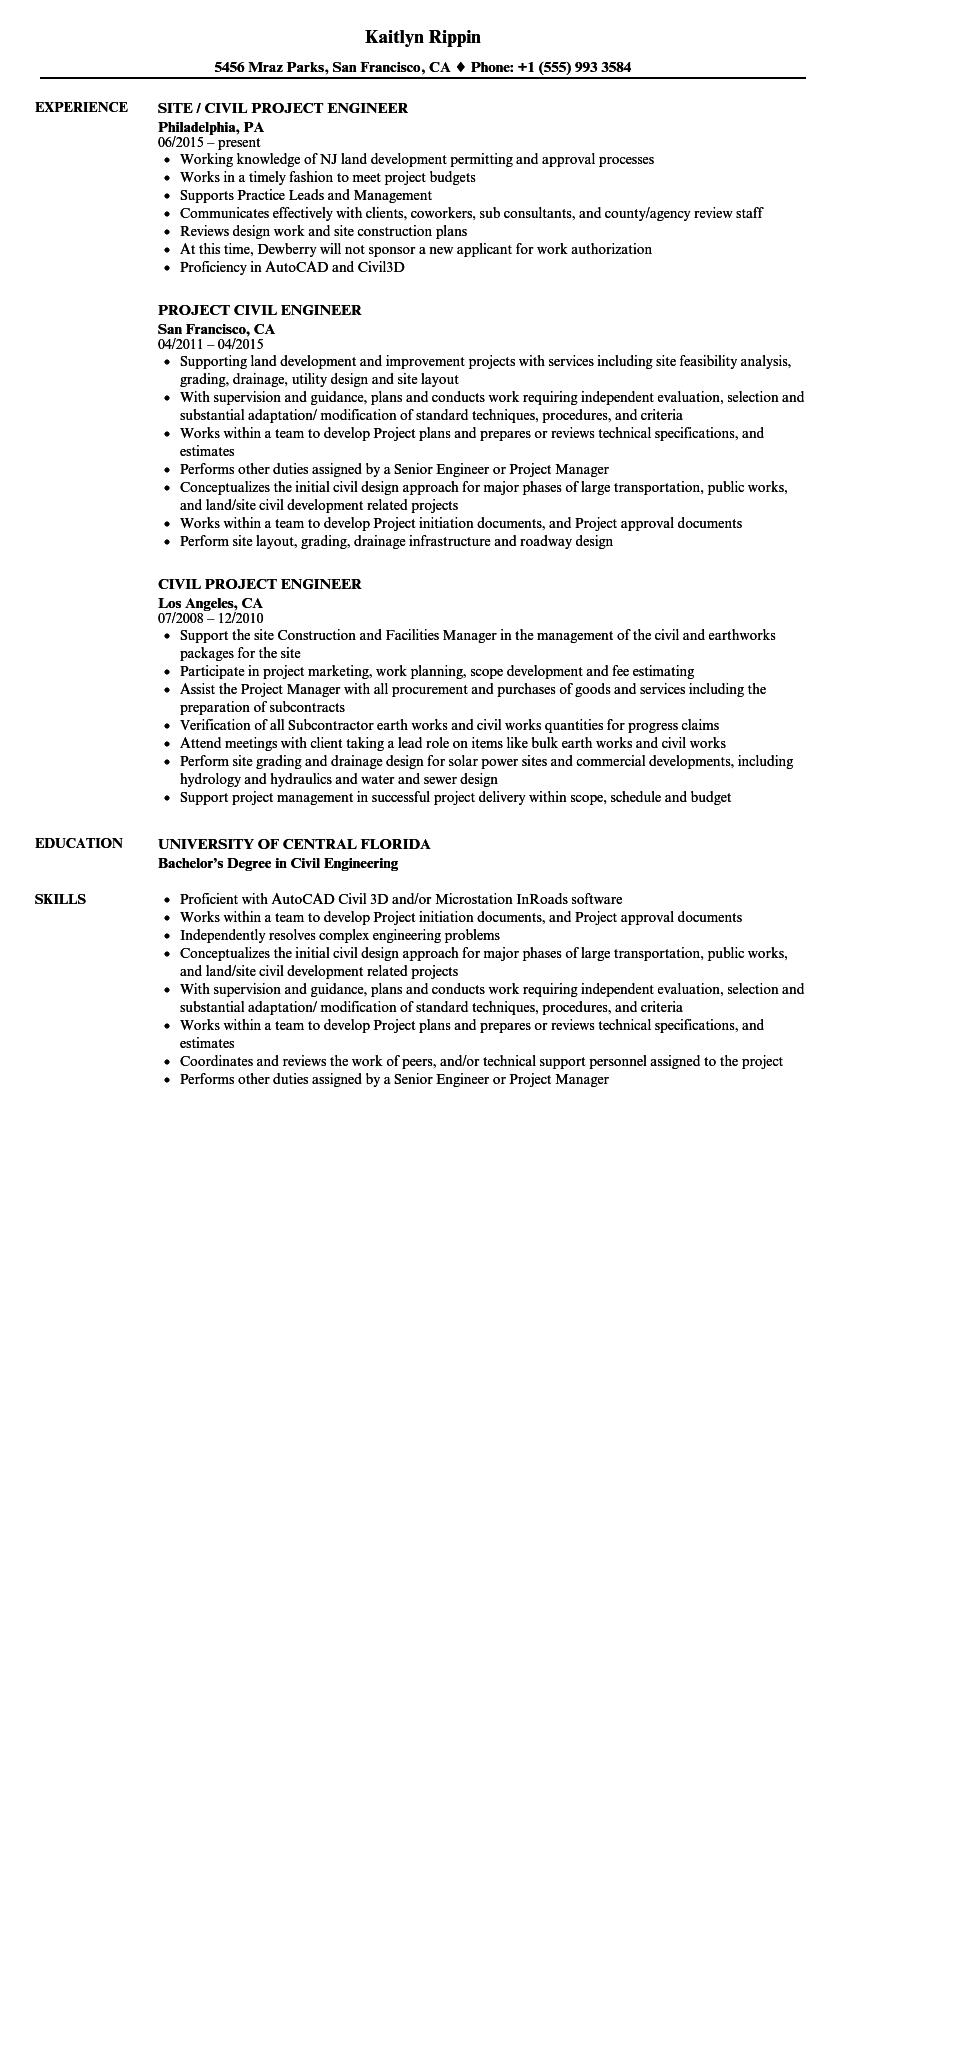 55 Top Civil Engineer Resume with Pictures